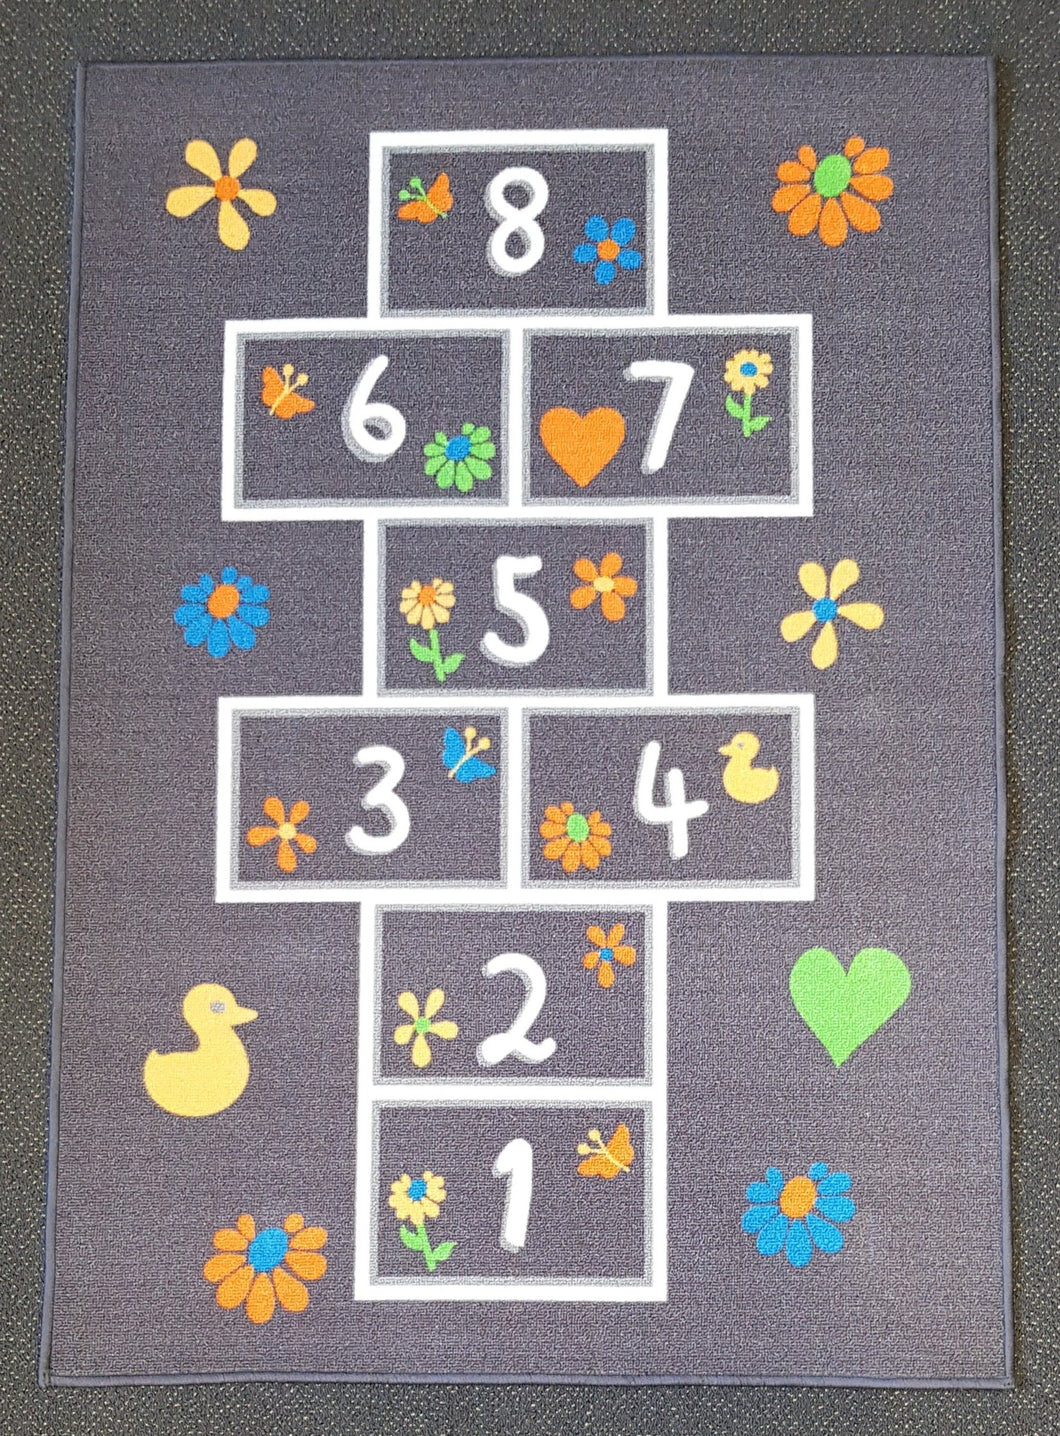 Hopscotch Mat in Size 90cm x 130cm-Rugs 4 Less